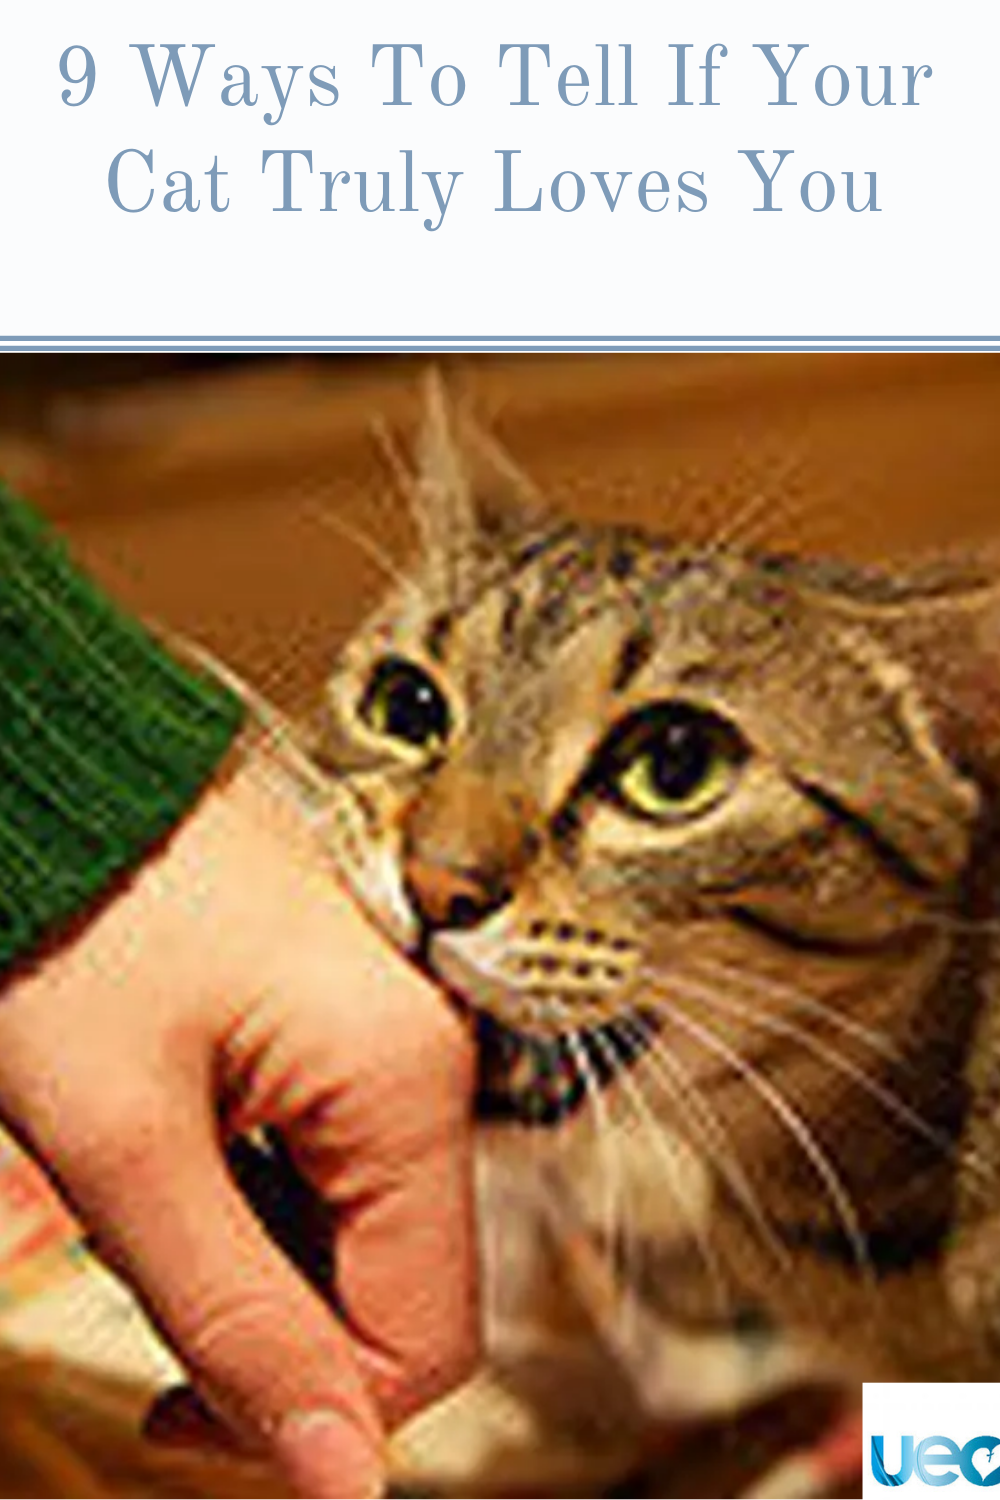 9 Ways To Tell If Your Cat Truly Loves You In 2020 Cats Cat Love Love You